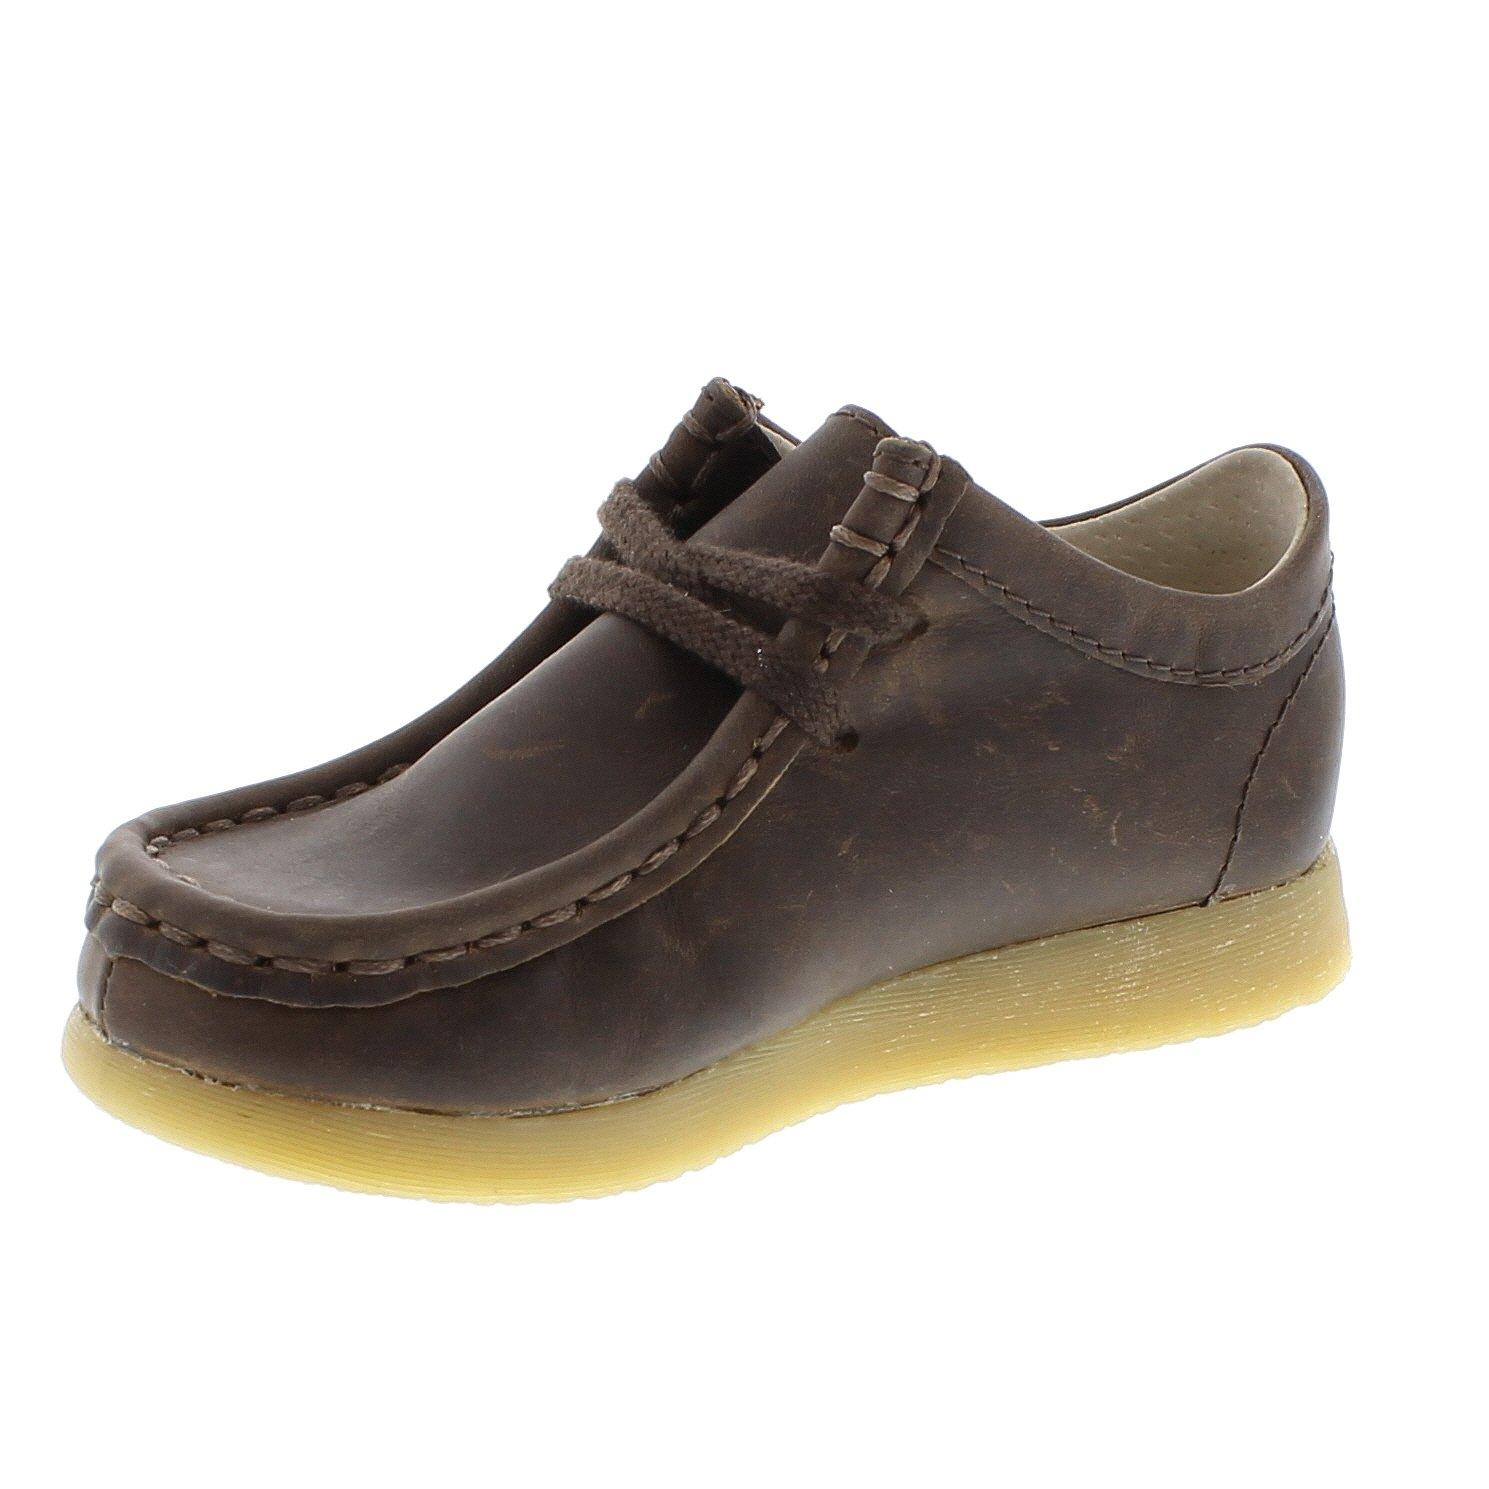 FOOTMATES Wally Low Wallabee Oxford Brown Oiled - 9125/12.5 Little Kid M/W by FOOTMATES (Image #5)